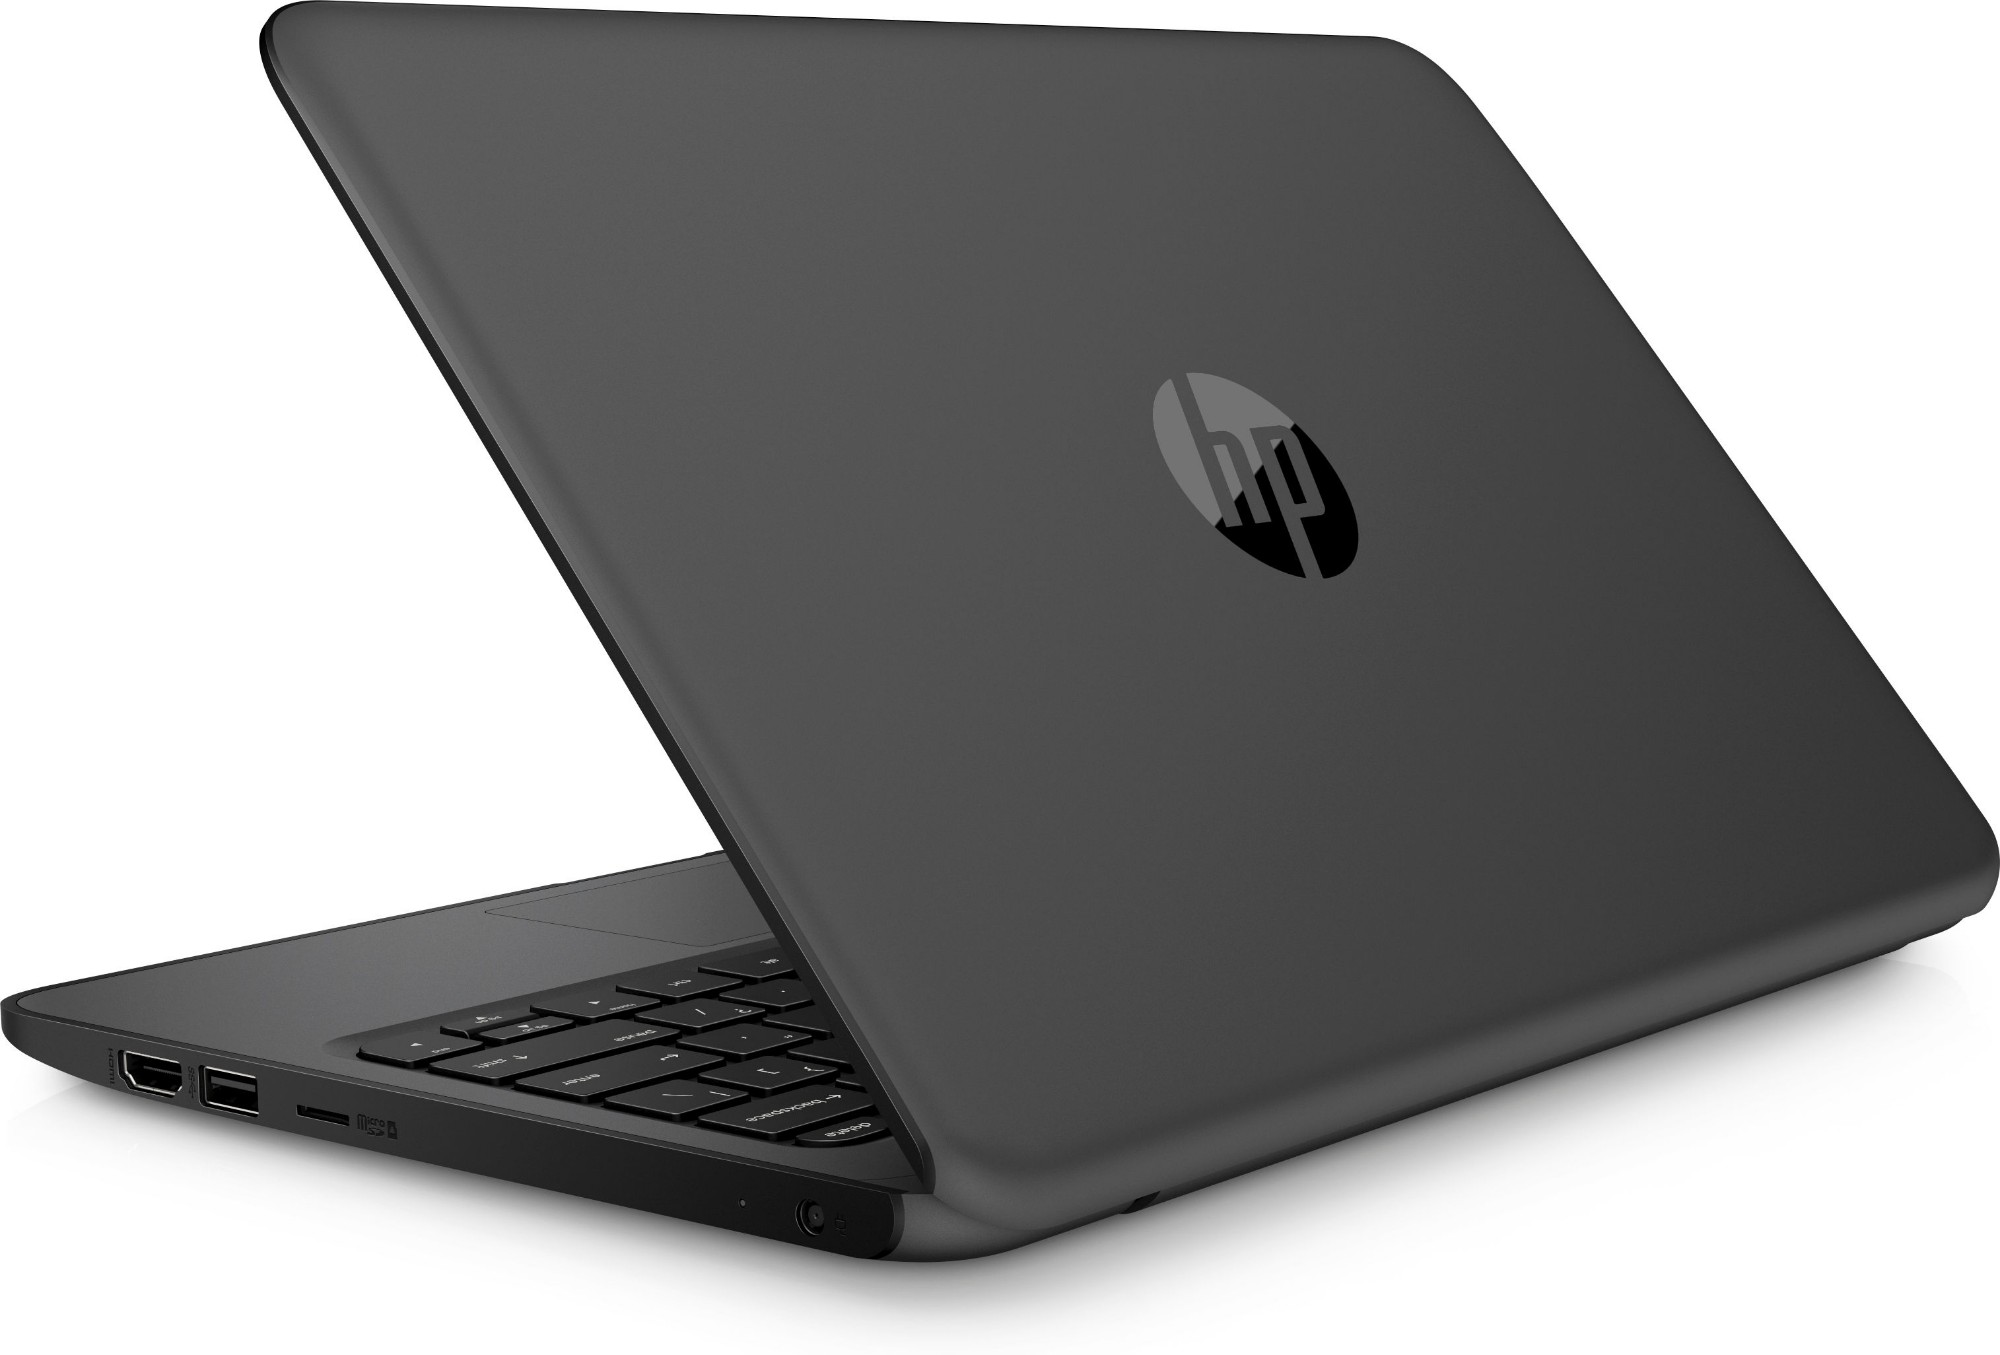 "HP Stream 11 Pro G4 EE Black Notebook 29.5 cm (11.6"") 1366 x 768 pixels 1.10 GHz Intel® Celeron® N3450"